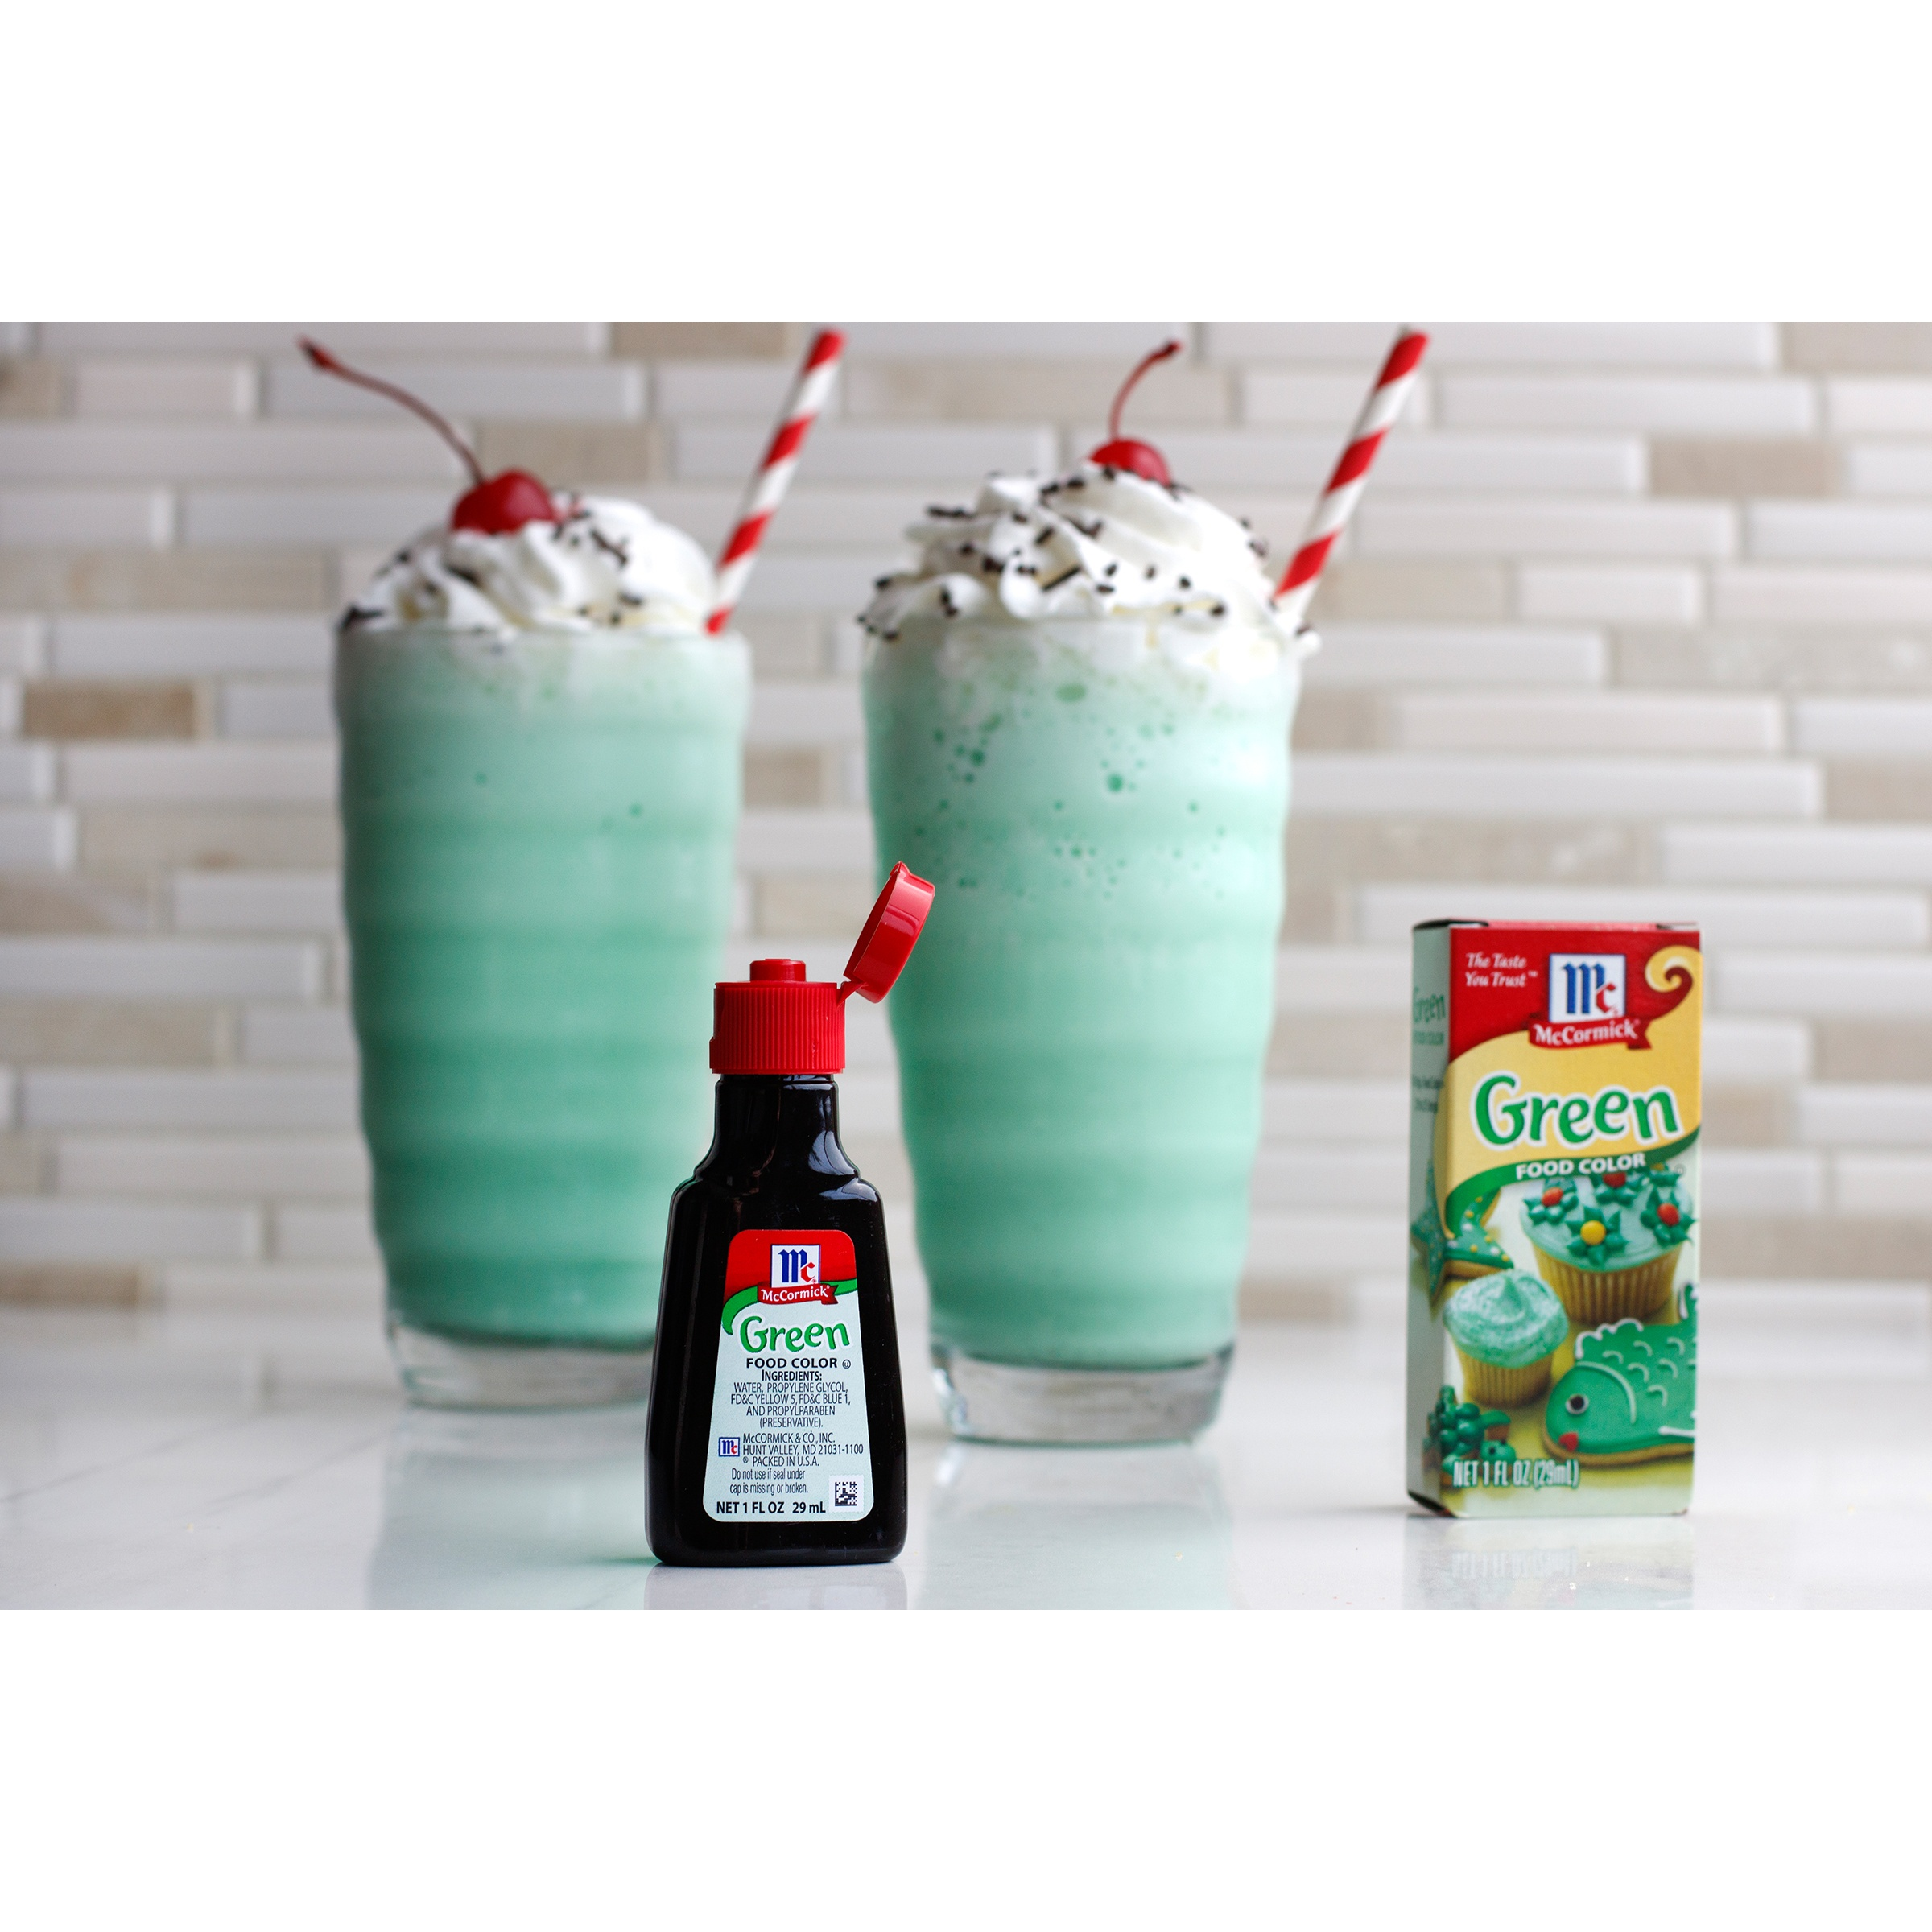 McCormick Green Food Coloring, 1 Fl oz - Walmart.com